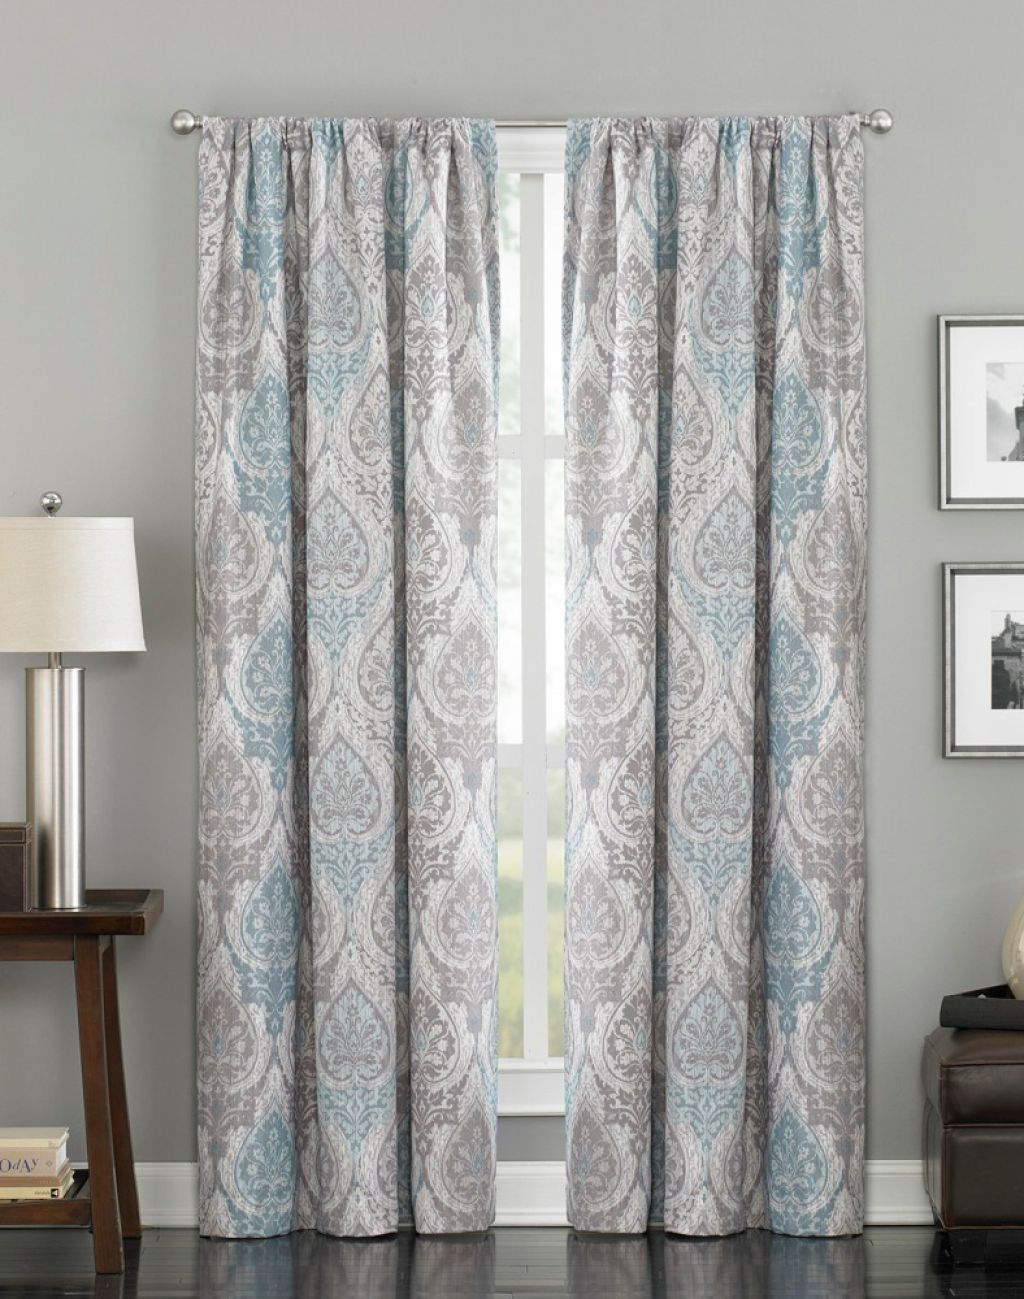 Stunning And Elegant Damask Curtains Curtains For Grey Walls